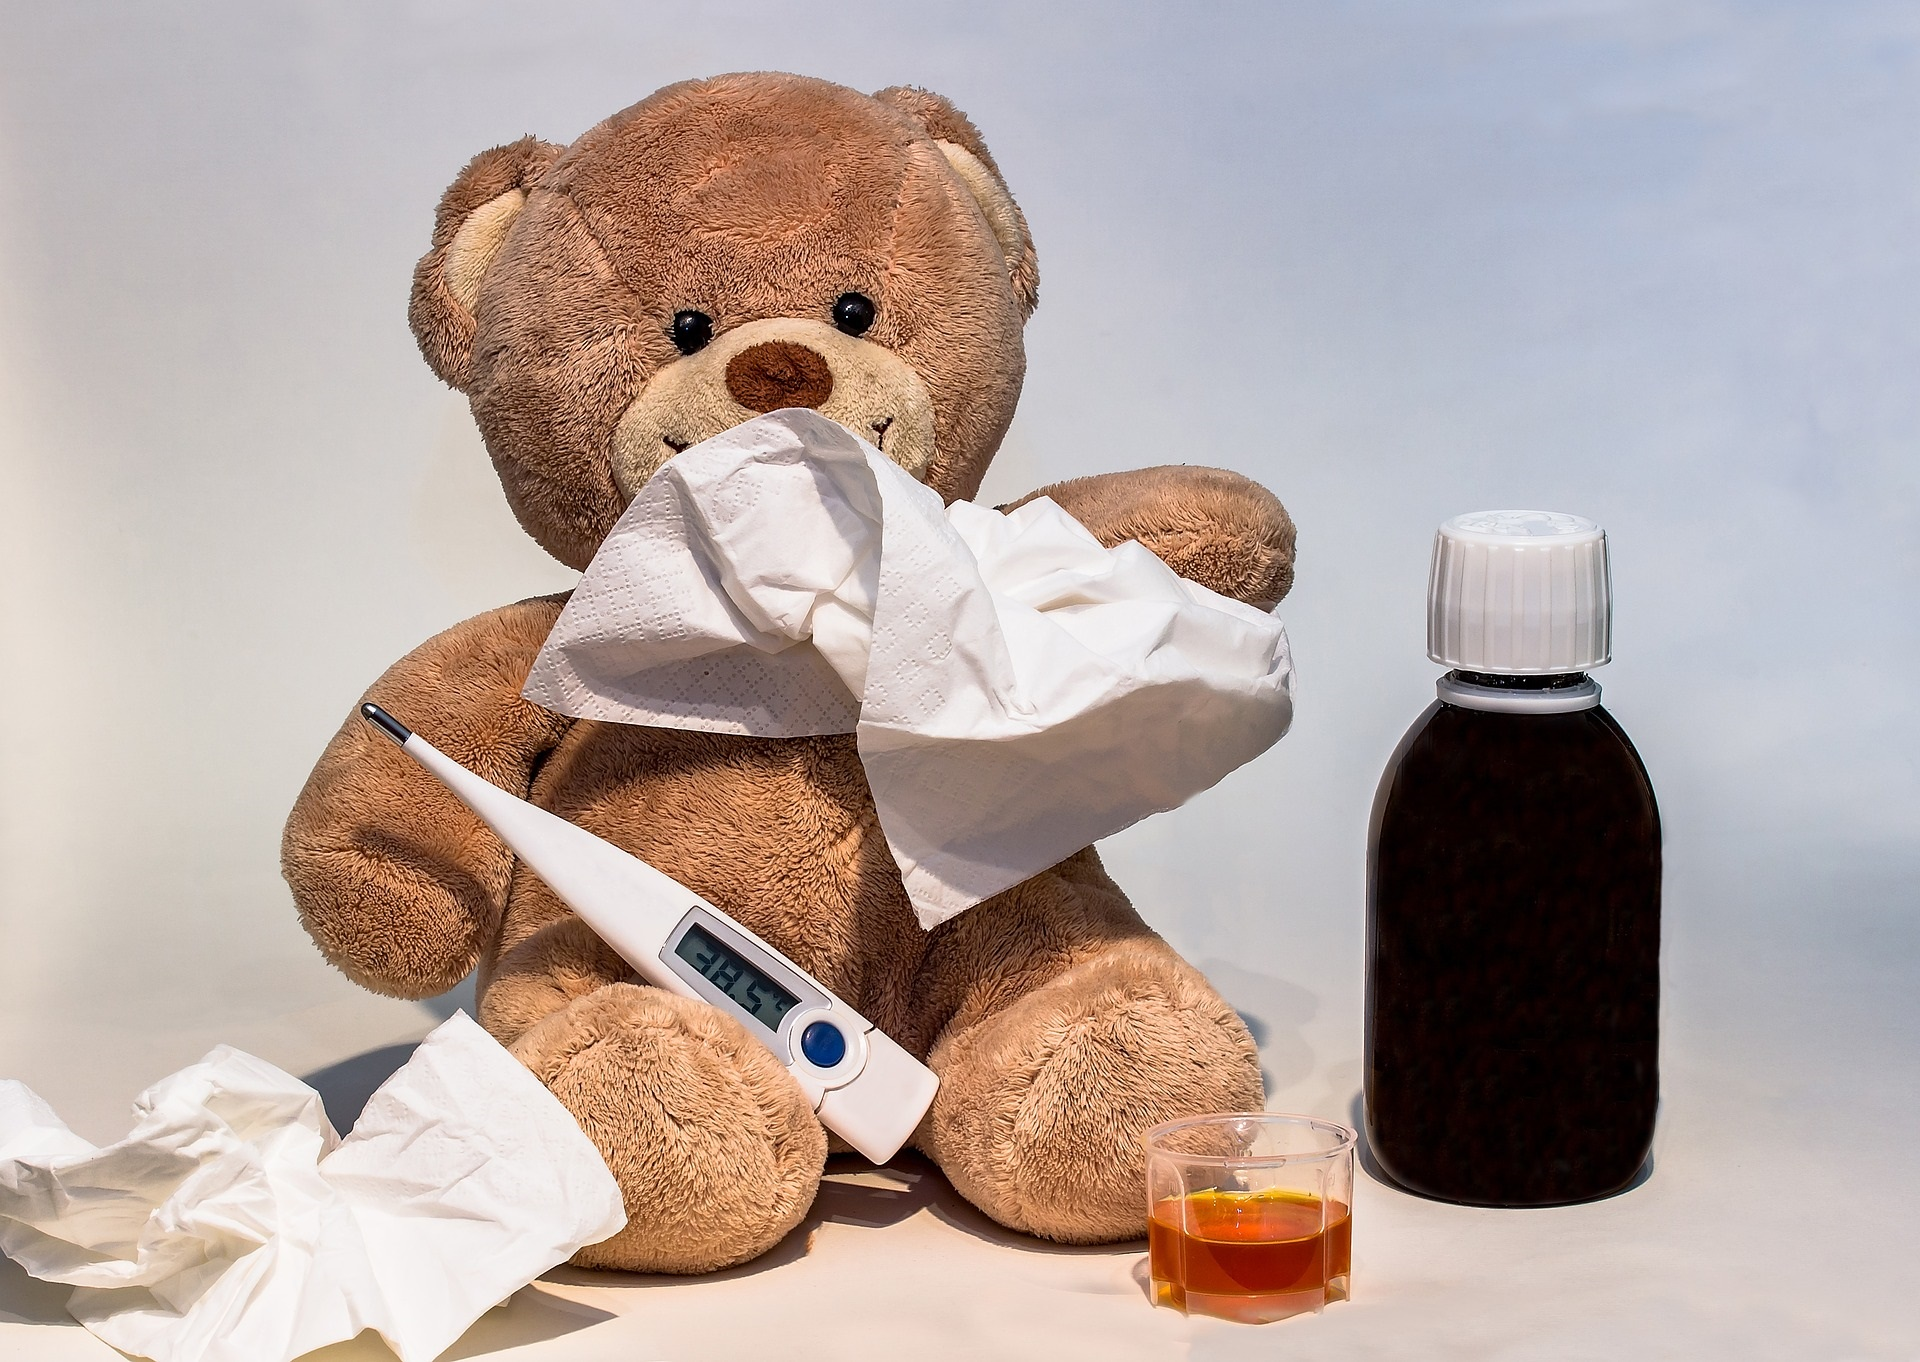 Teddy bear with tissues, thermometer, and cough medicine